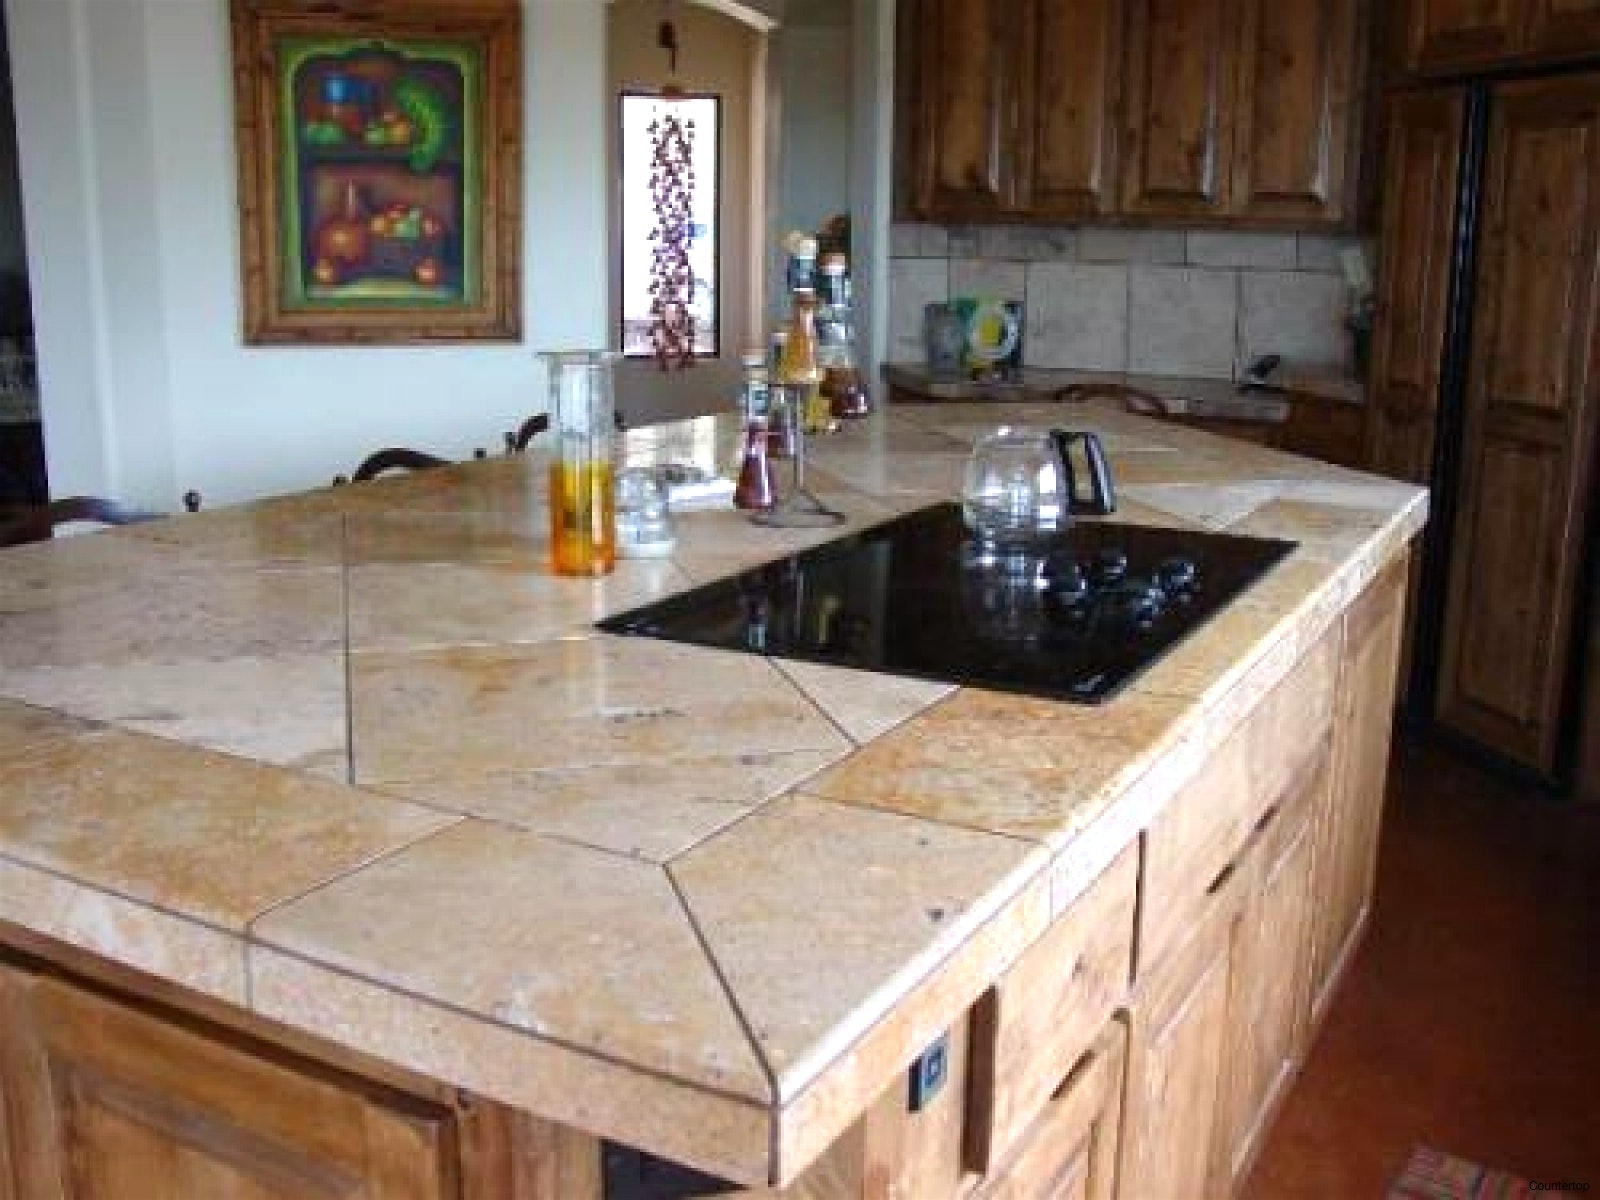 ... A Counter Top, But We Like The Look Of The Granite And The Perfectly  Straight Grout Lines. Perhaps It Is Something To Consideru2026 This Is A Great  ...